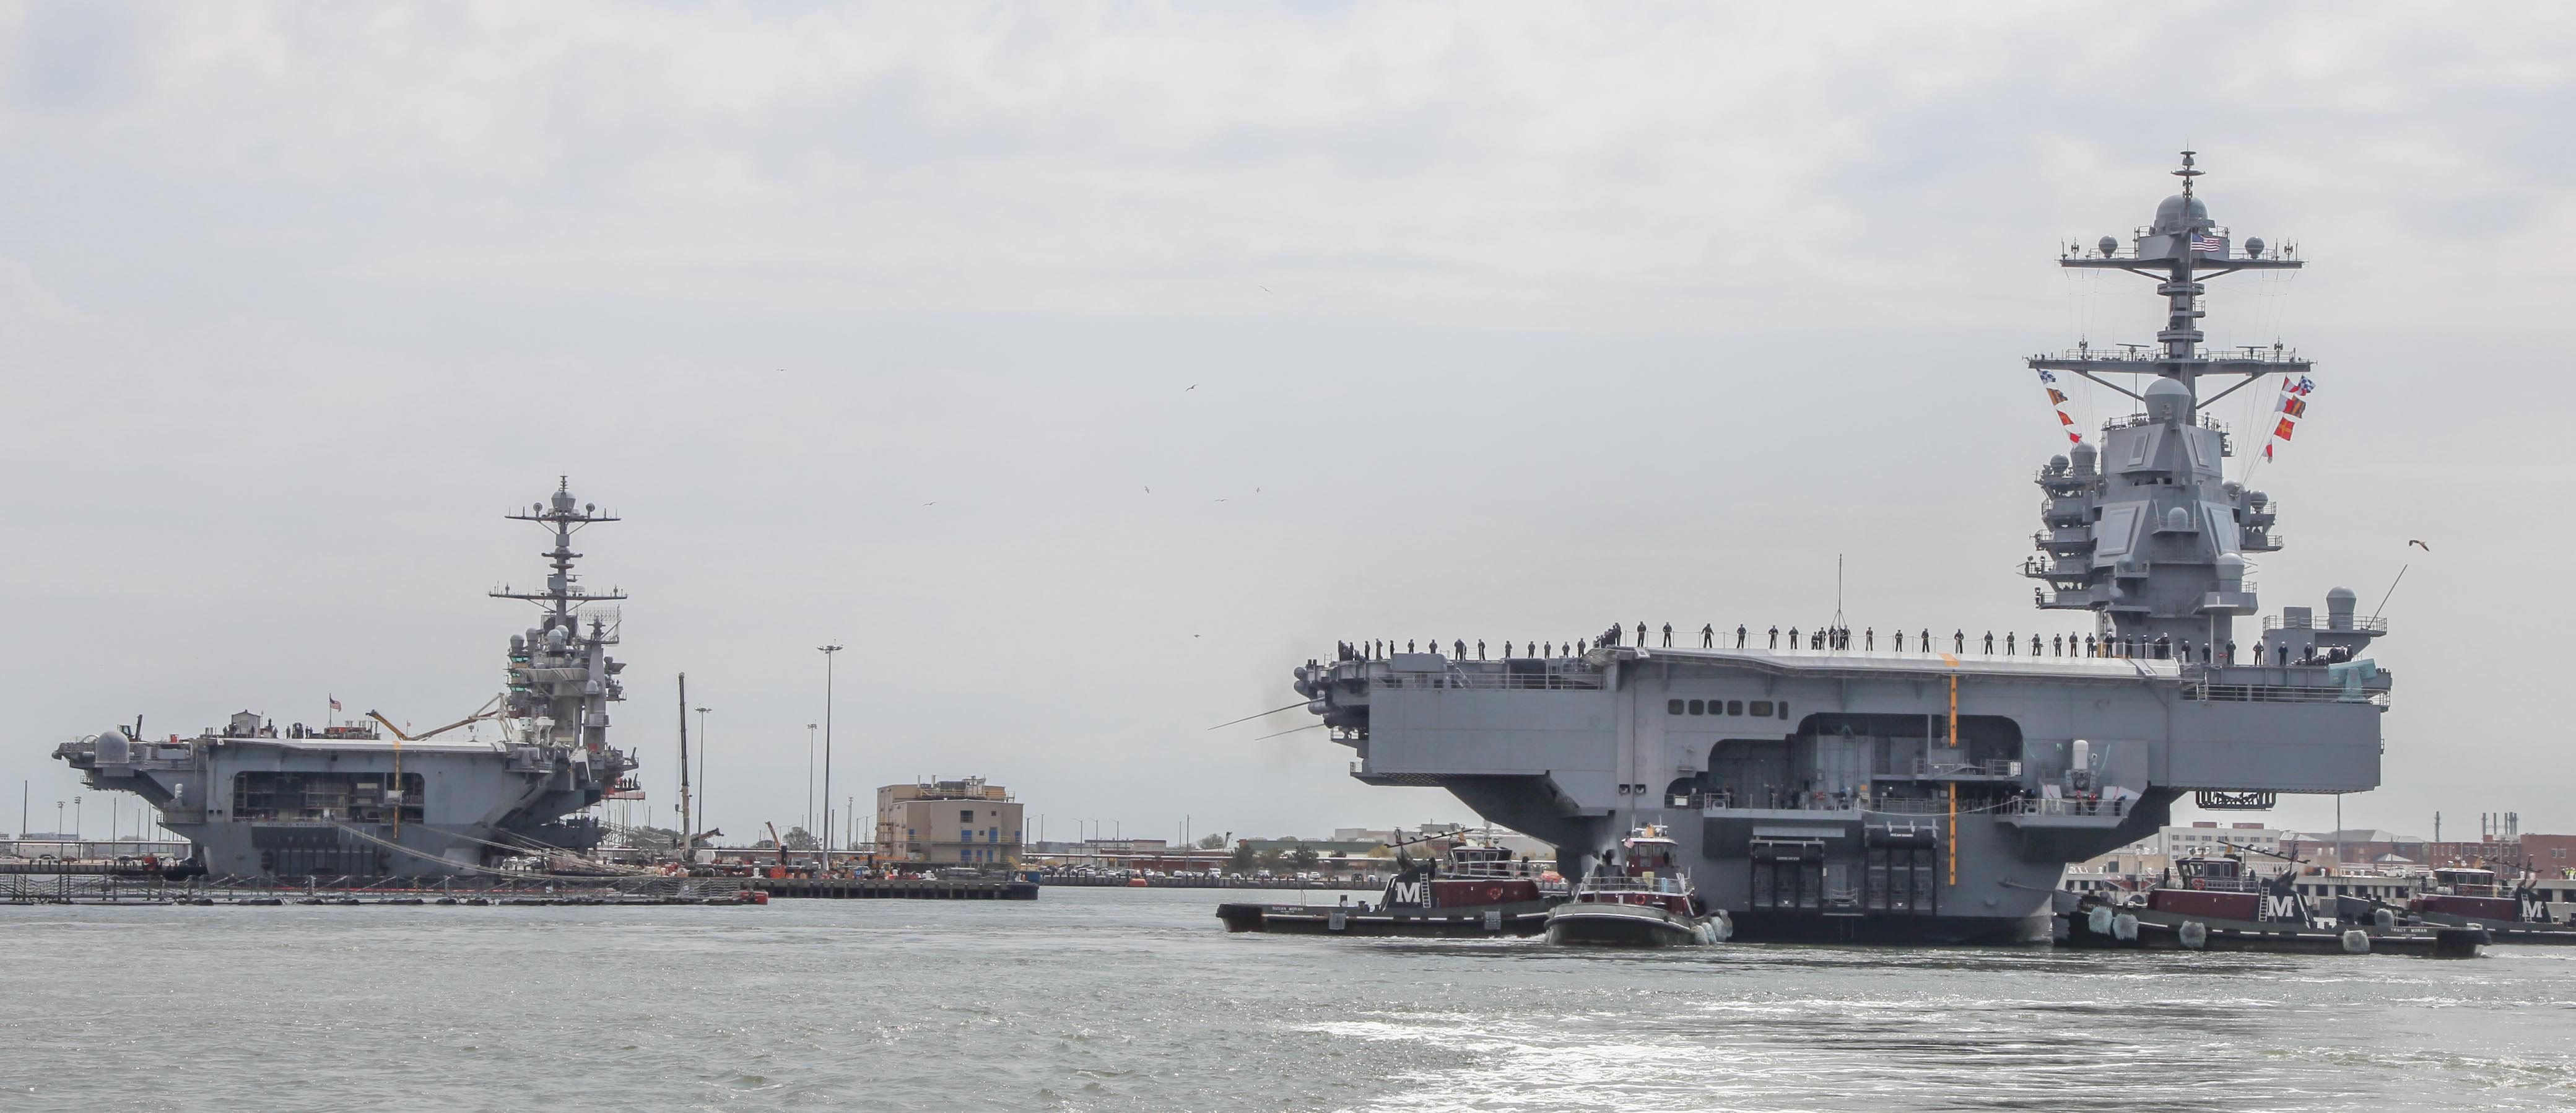 USS Gerald R. Ford Returns from Trials - 5